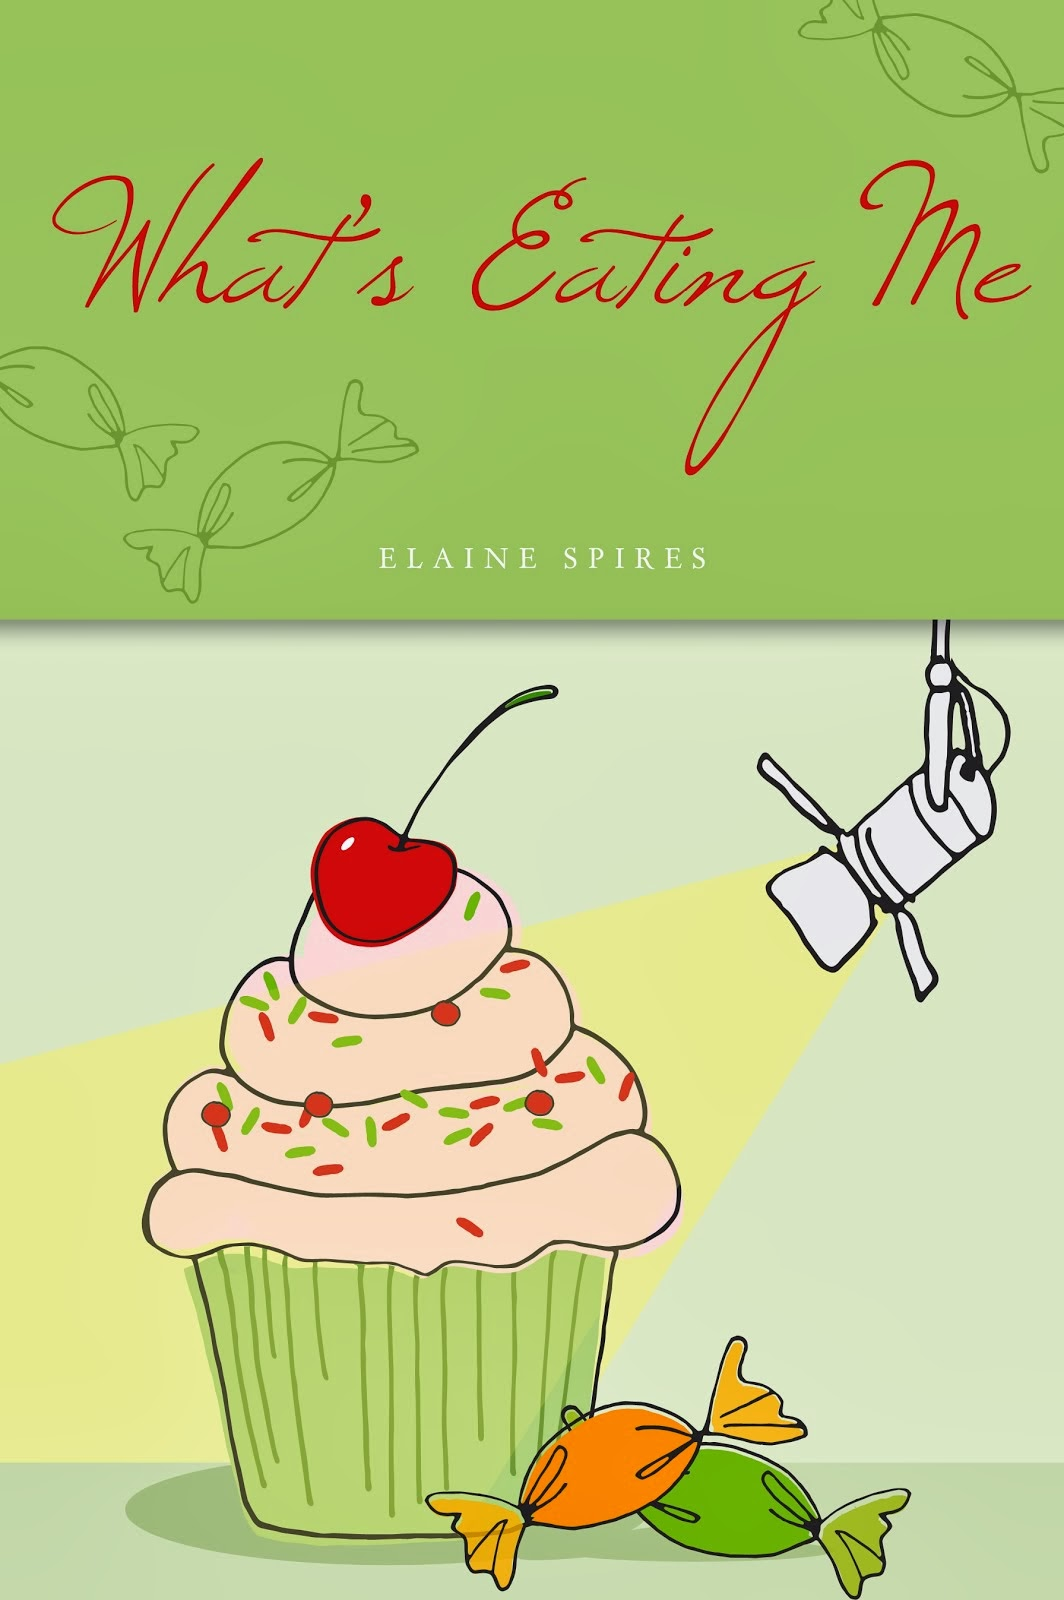 What's Eating Me by Elaine Spires